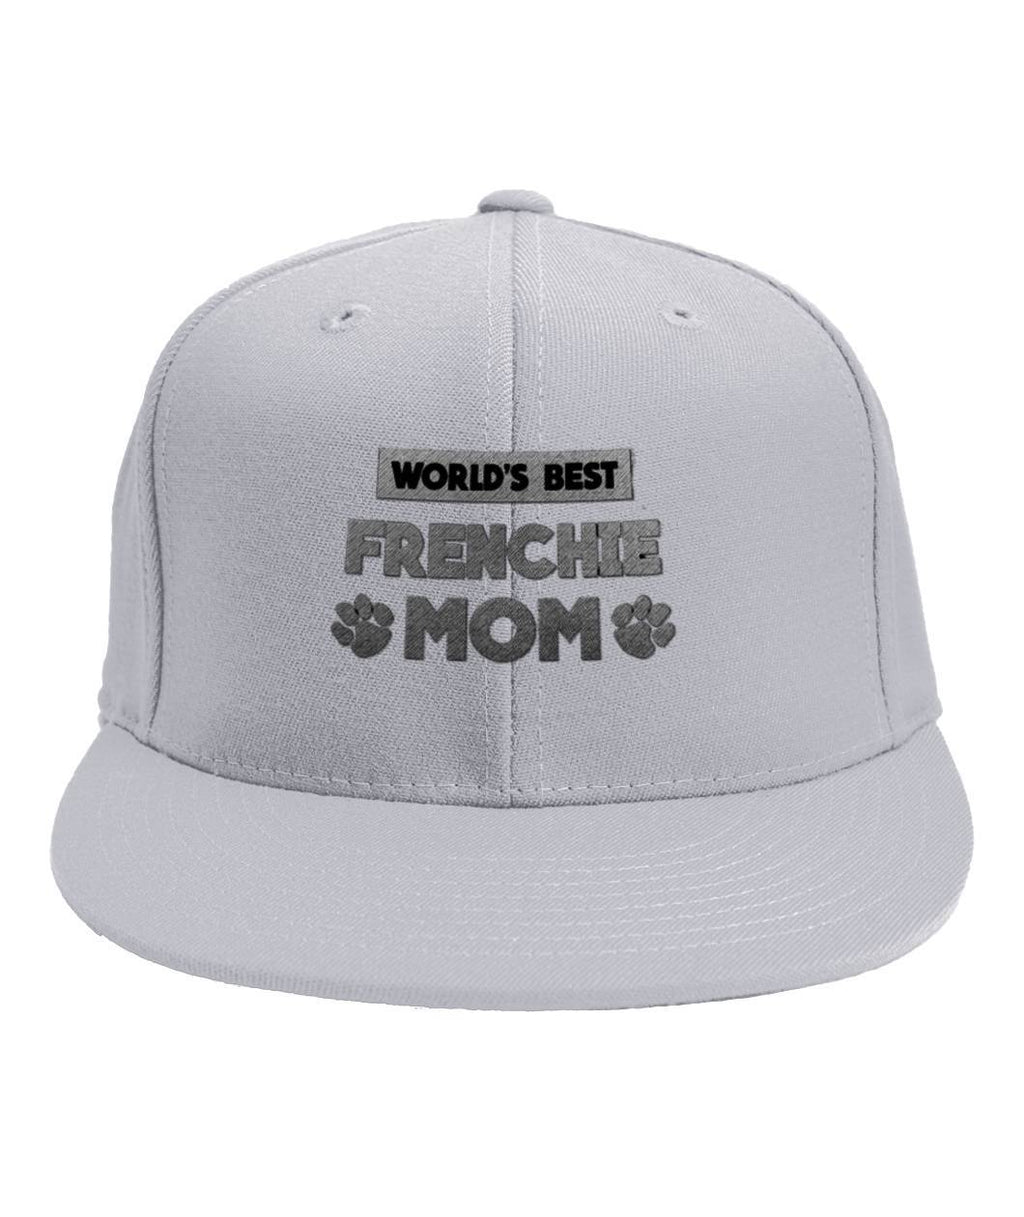 Frenchie Mom - Hat - Frenchie Bulldog Shop